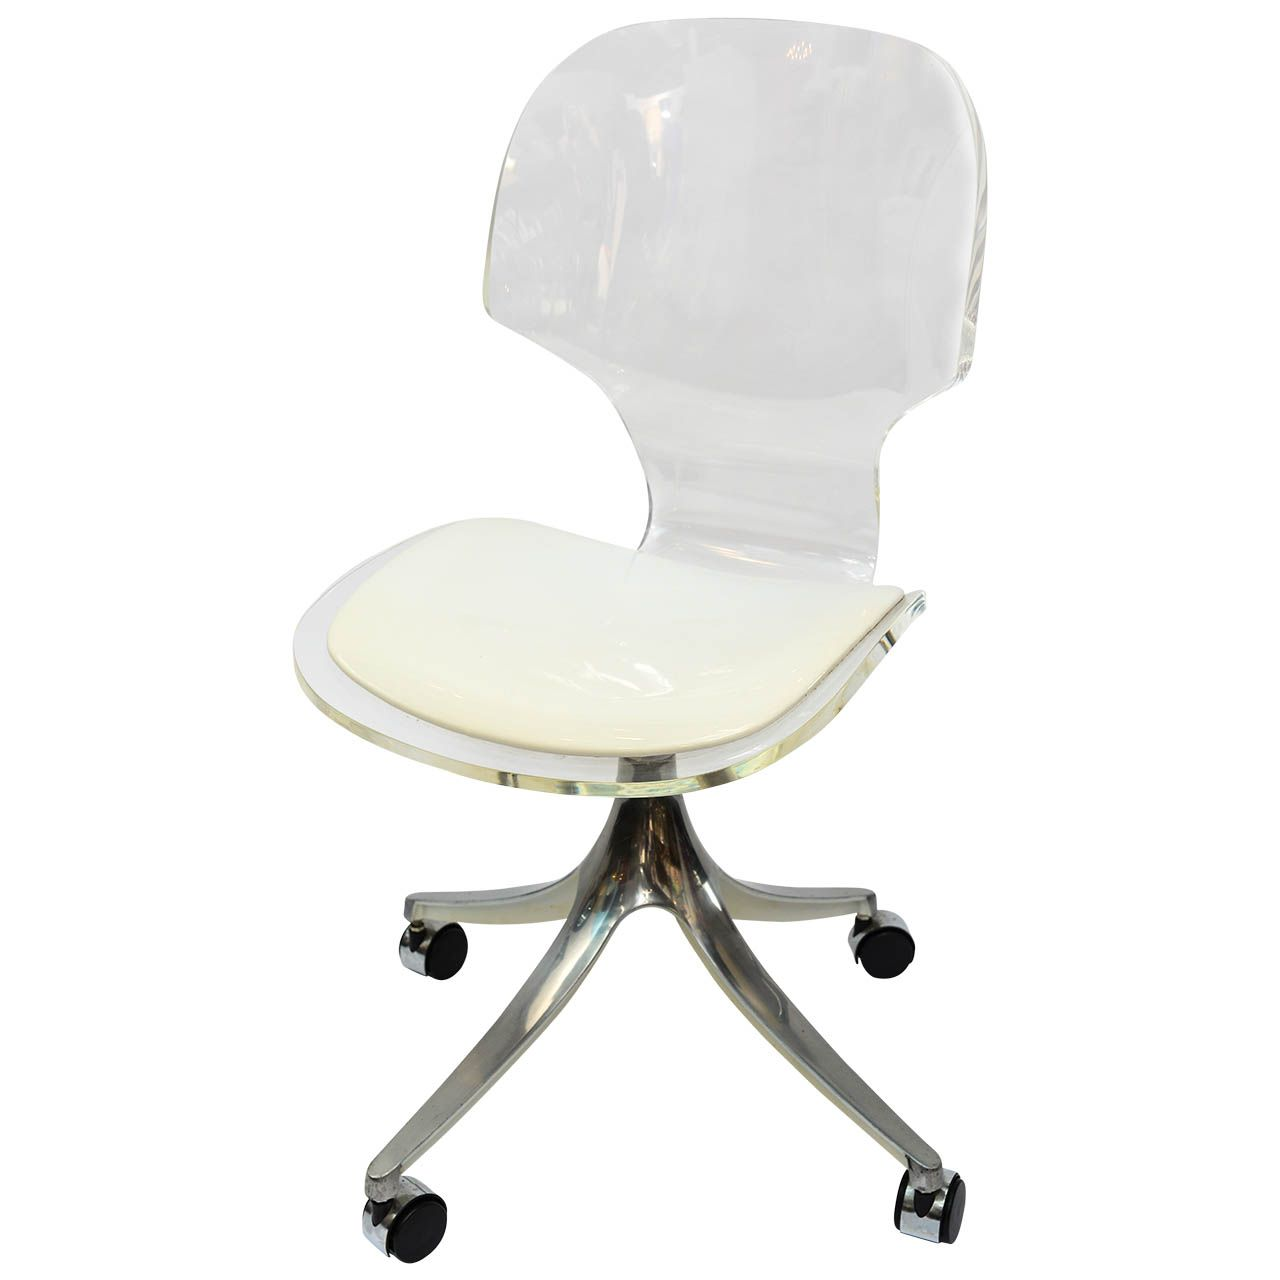 Stunning 1960u0027s Lucite Desk Chair On Chrome Swivel Base   From A Unique  Collection Of Antique And Modern Office Chairs And Desk Chairs At ...